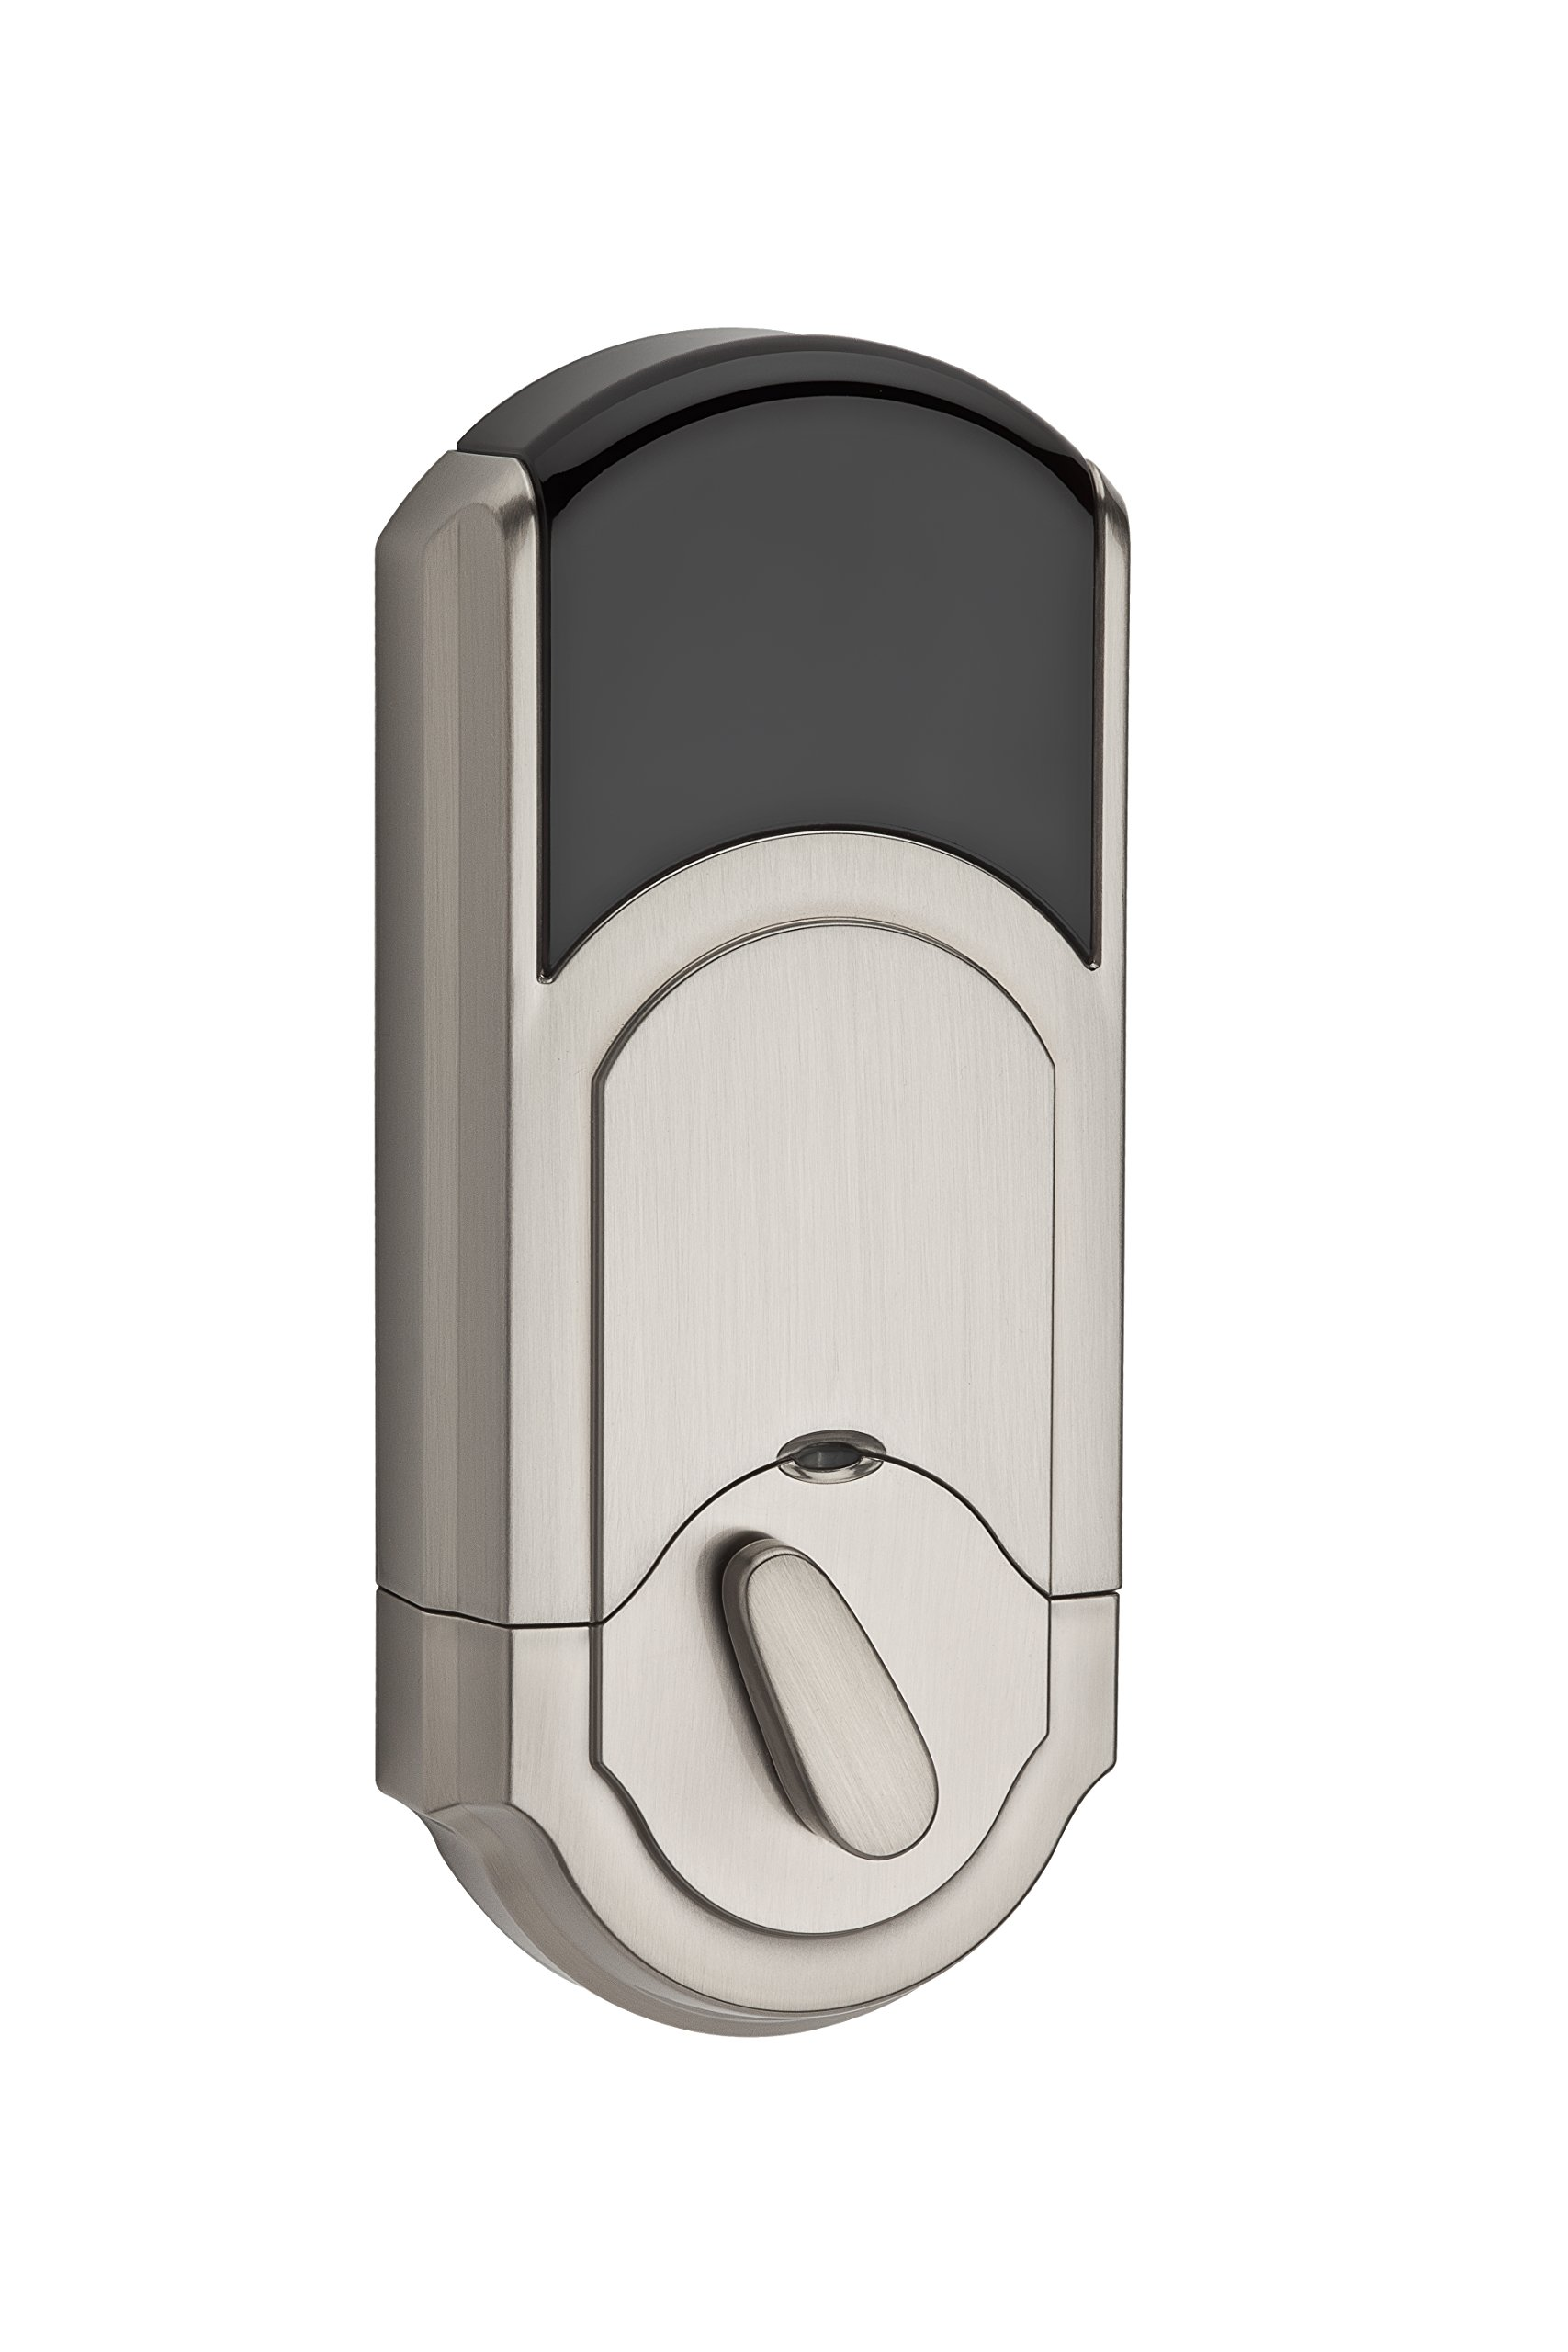 Kwikset 910 Z-Wave Signature Series Traditional Electronic Deadbolt in Satin Nickel by Kwikset (Image #3)